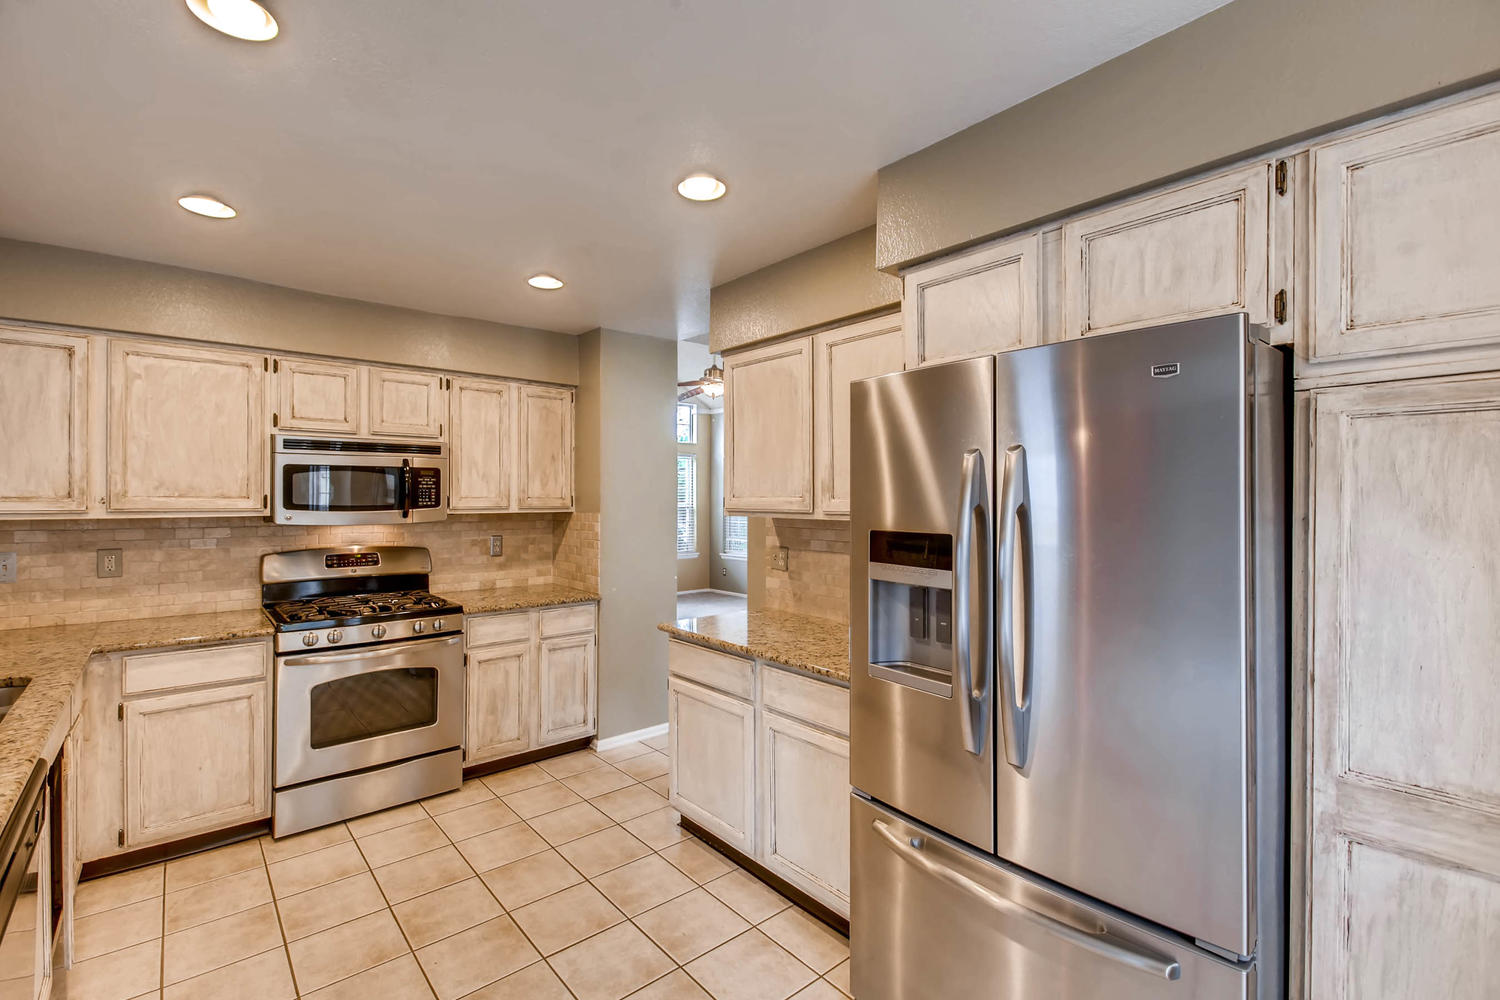 Photo of 4866 N Sungold Ln, Castle Rock, CO, 80109